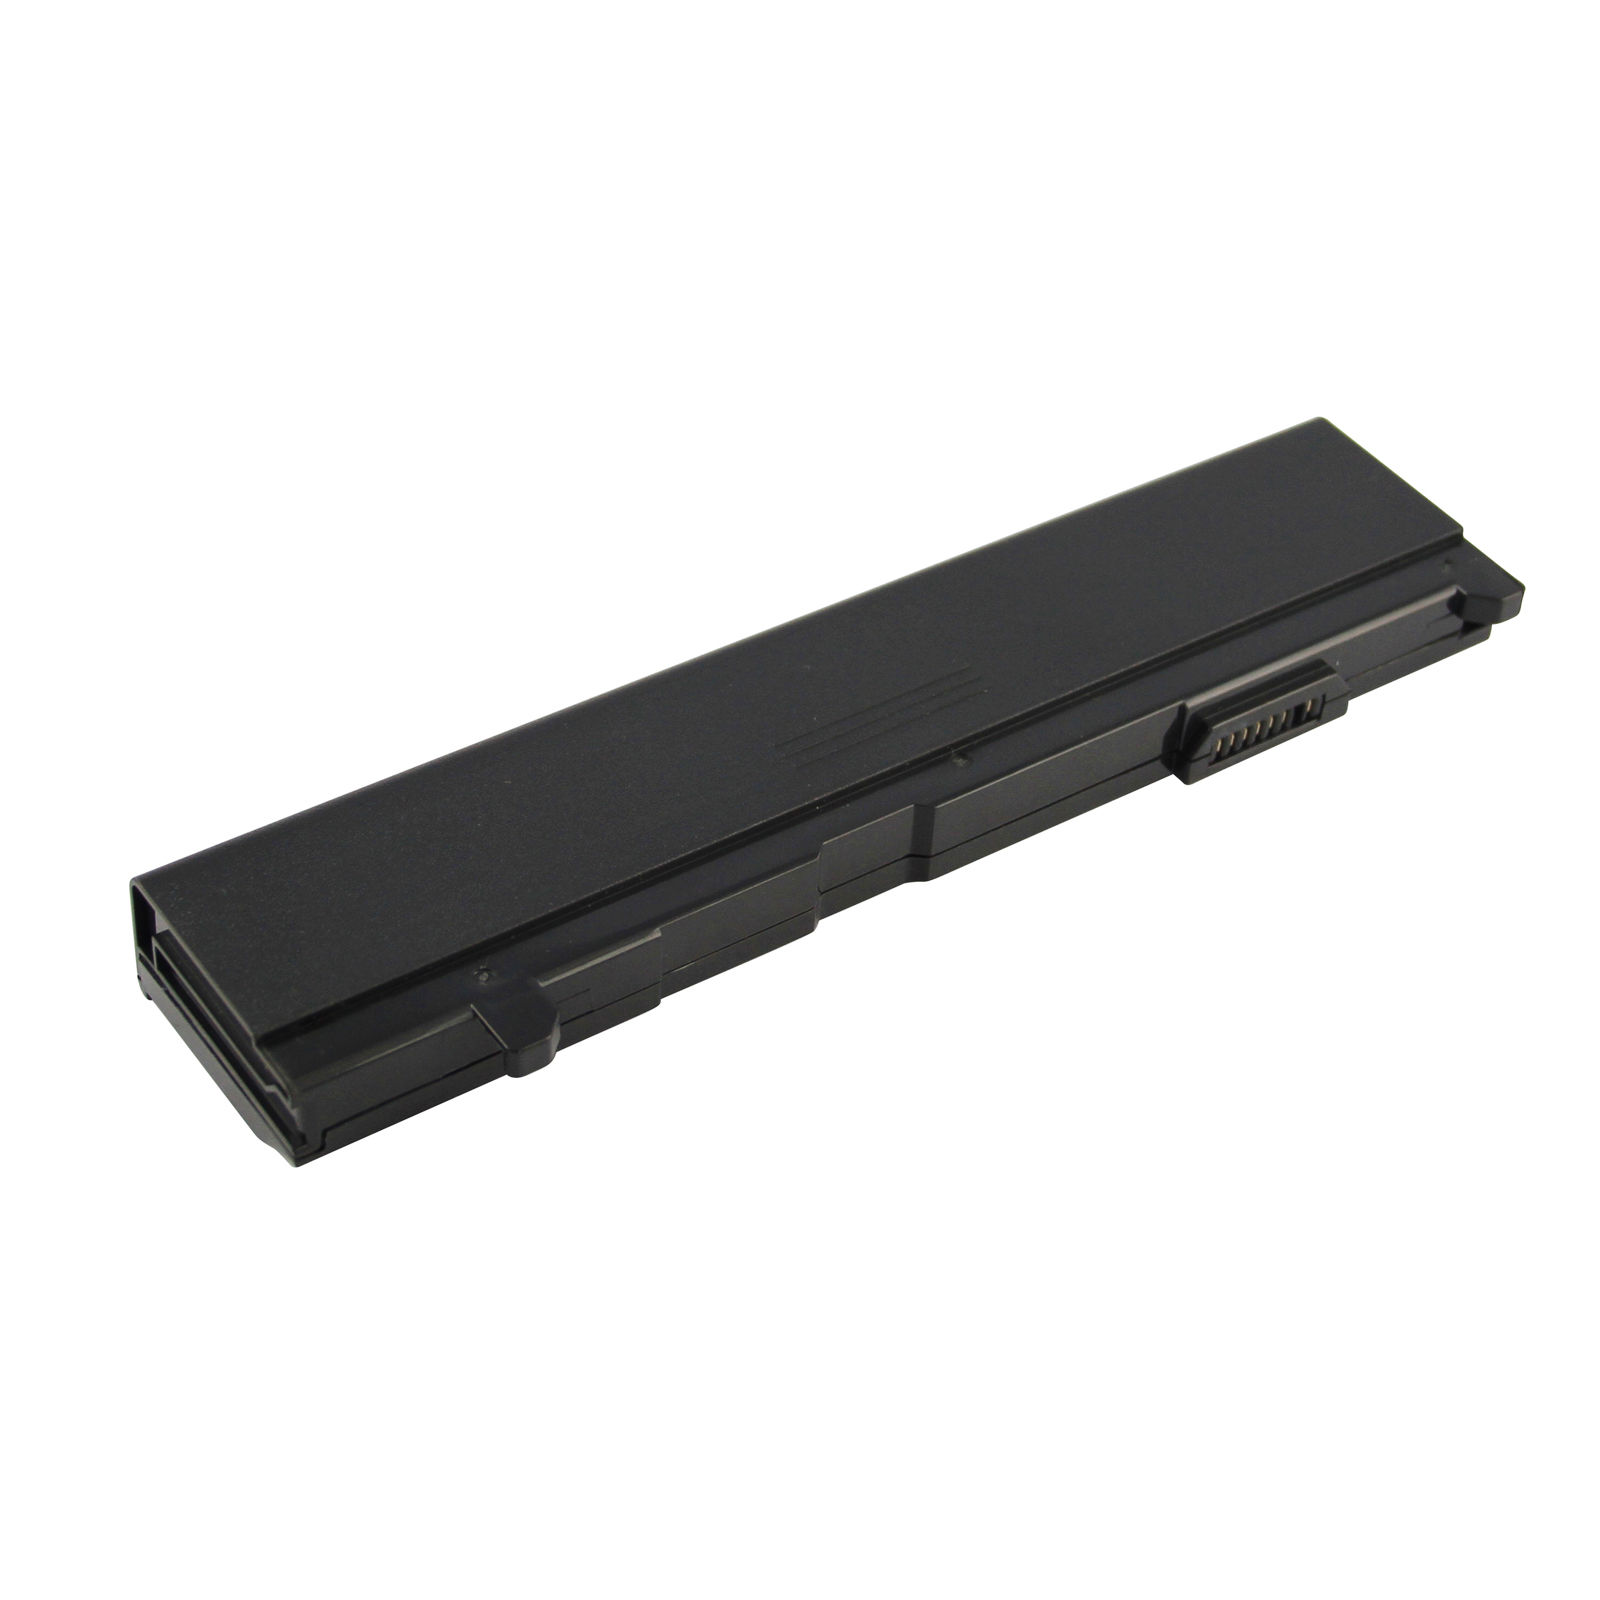 Replacement Toshiba Satellite A105-S4094 Battery